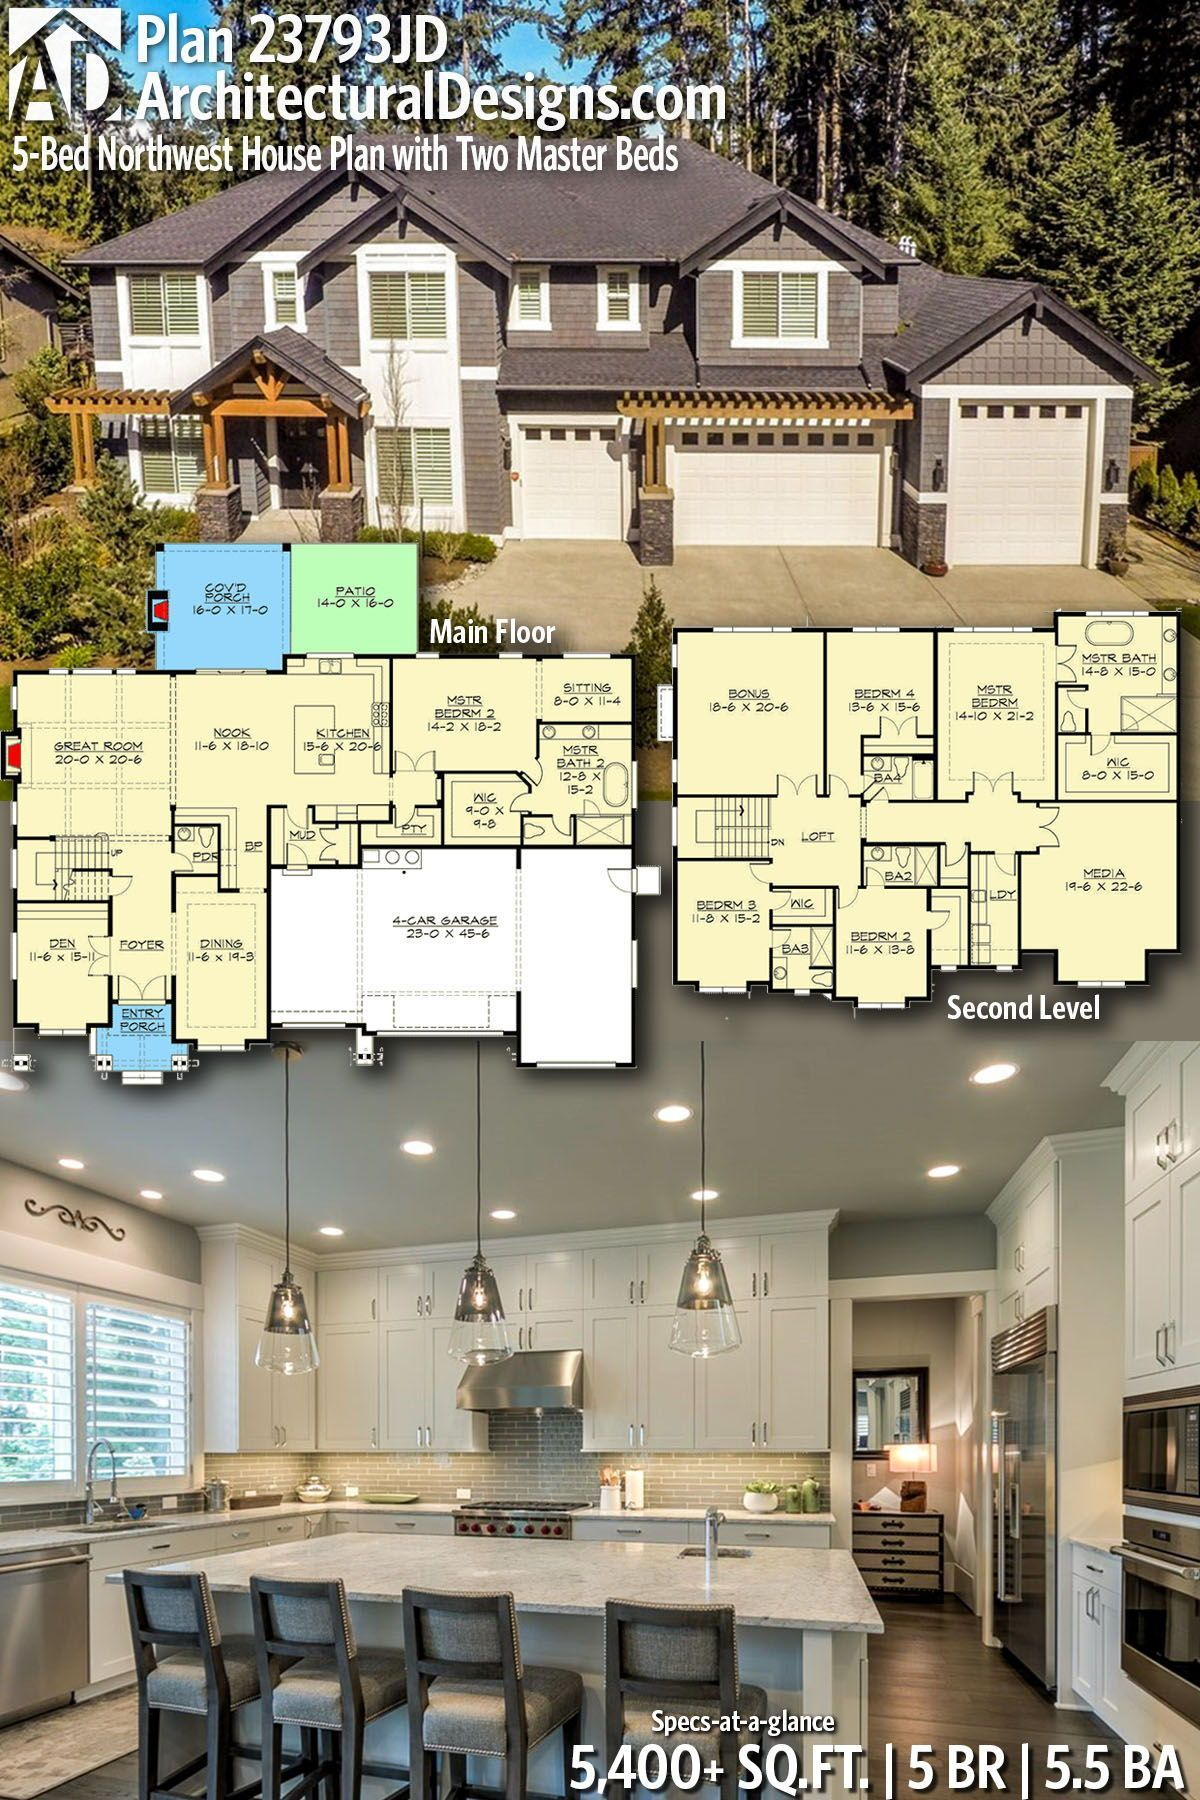 Plan 23793JD 5Bed Northwest House Plan with Two Master